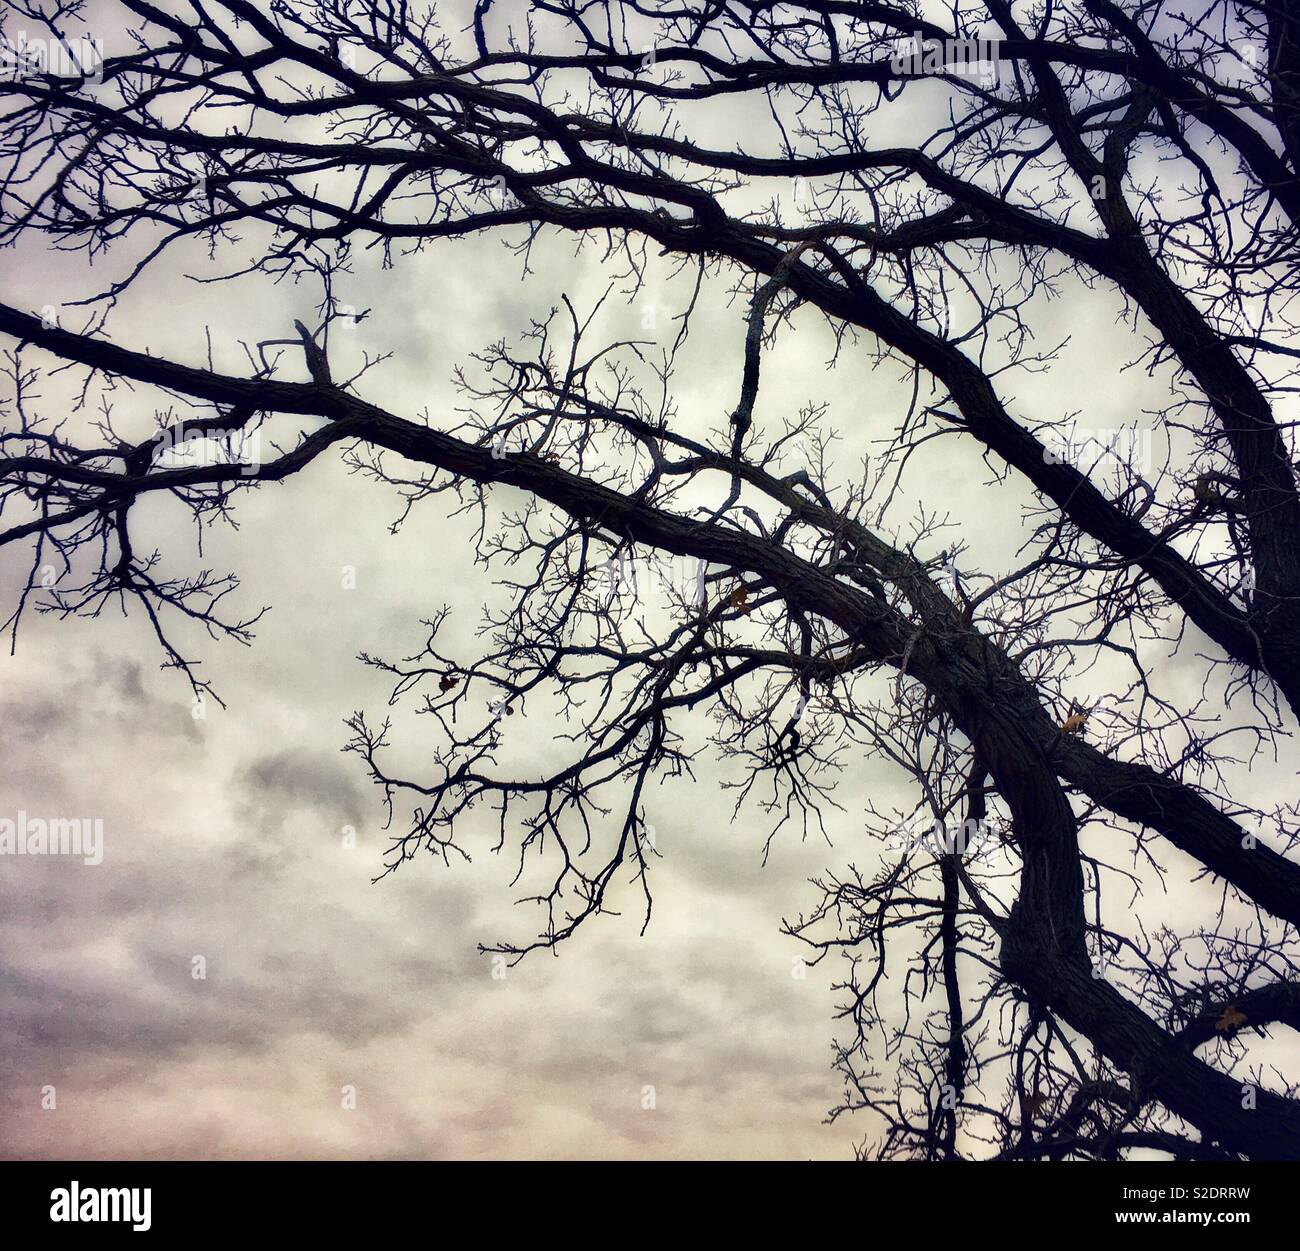 Creepy dark trees against Cloudy sky - Stock Image